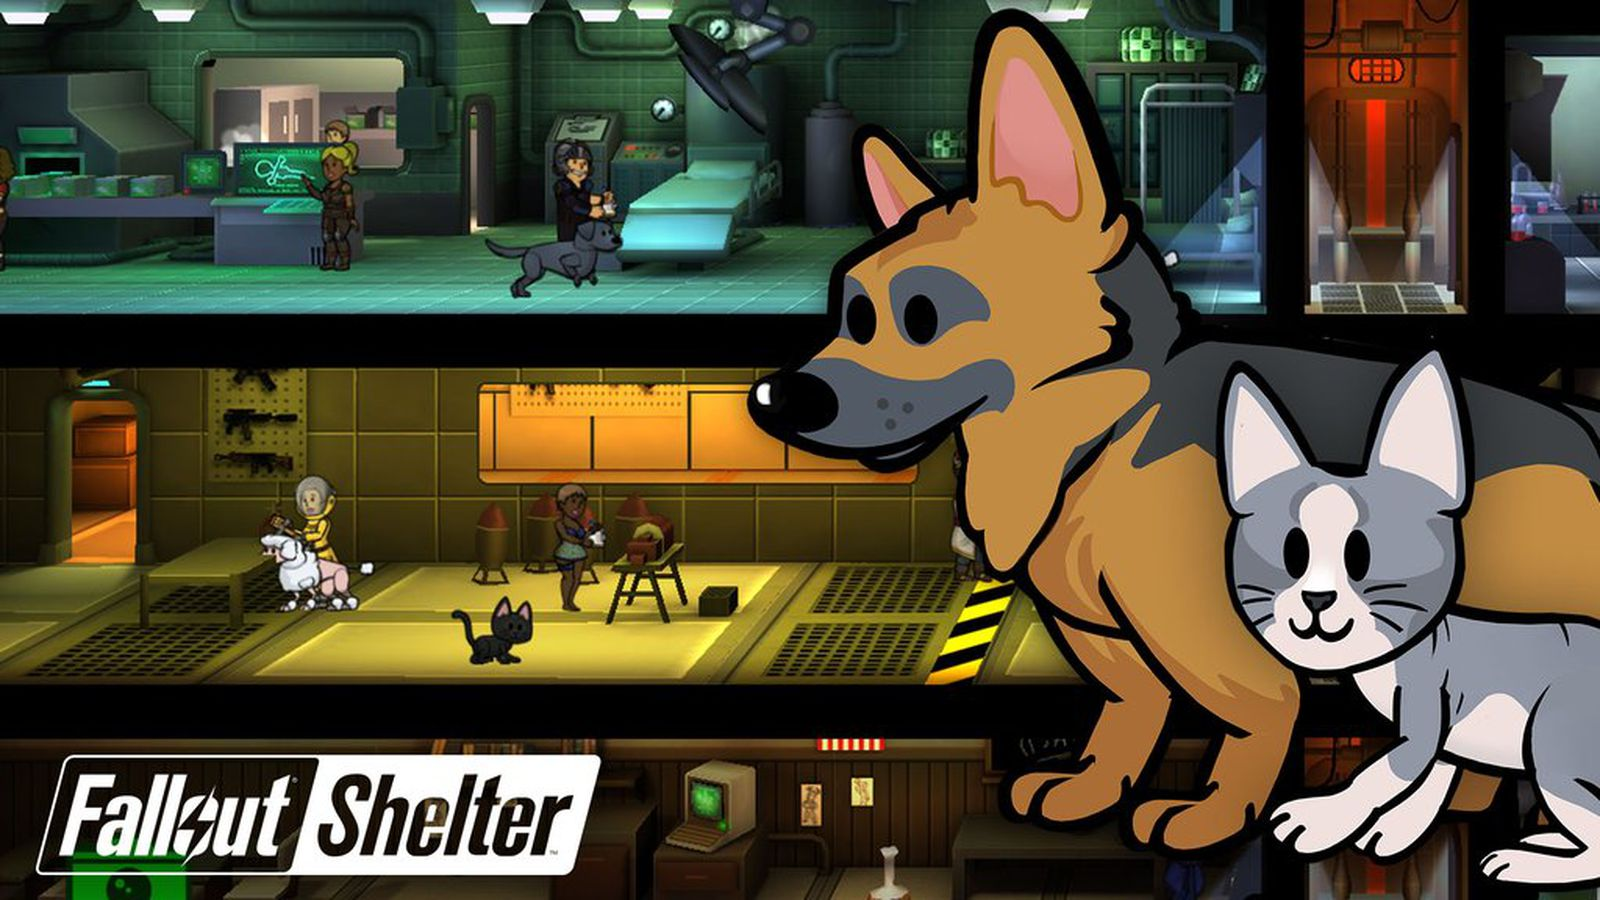 Fall Out Boy Wallpaper Phone Fallout Shelter Introduces Dogmeat And Other Pets To The